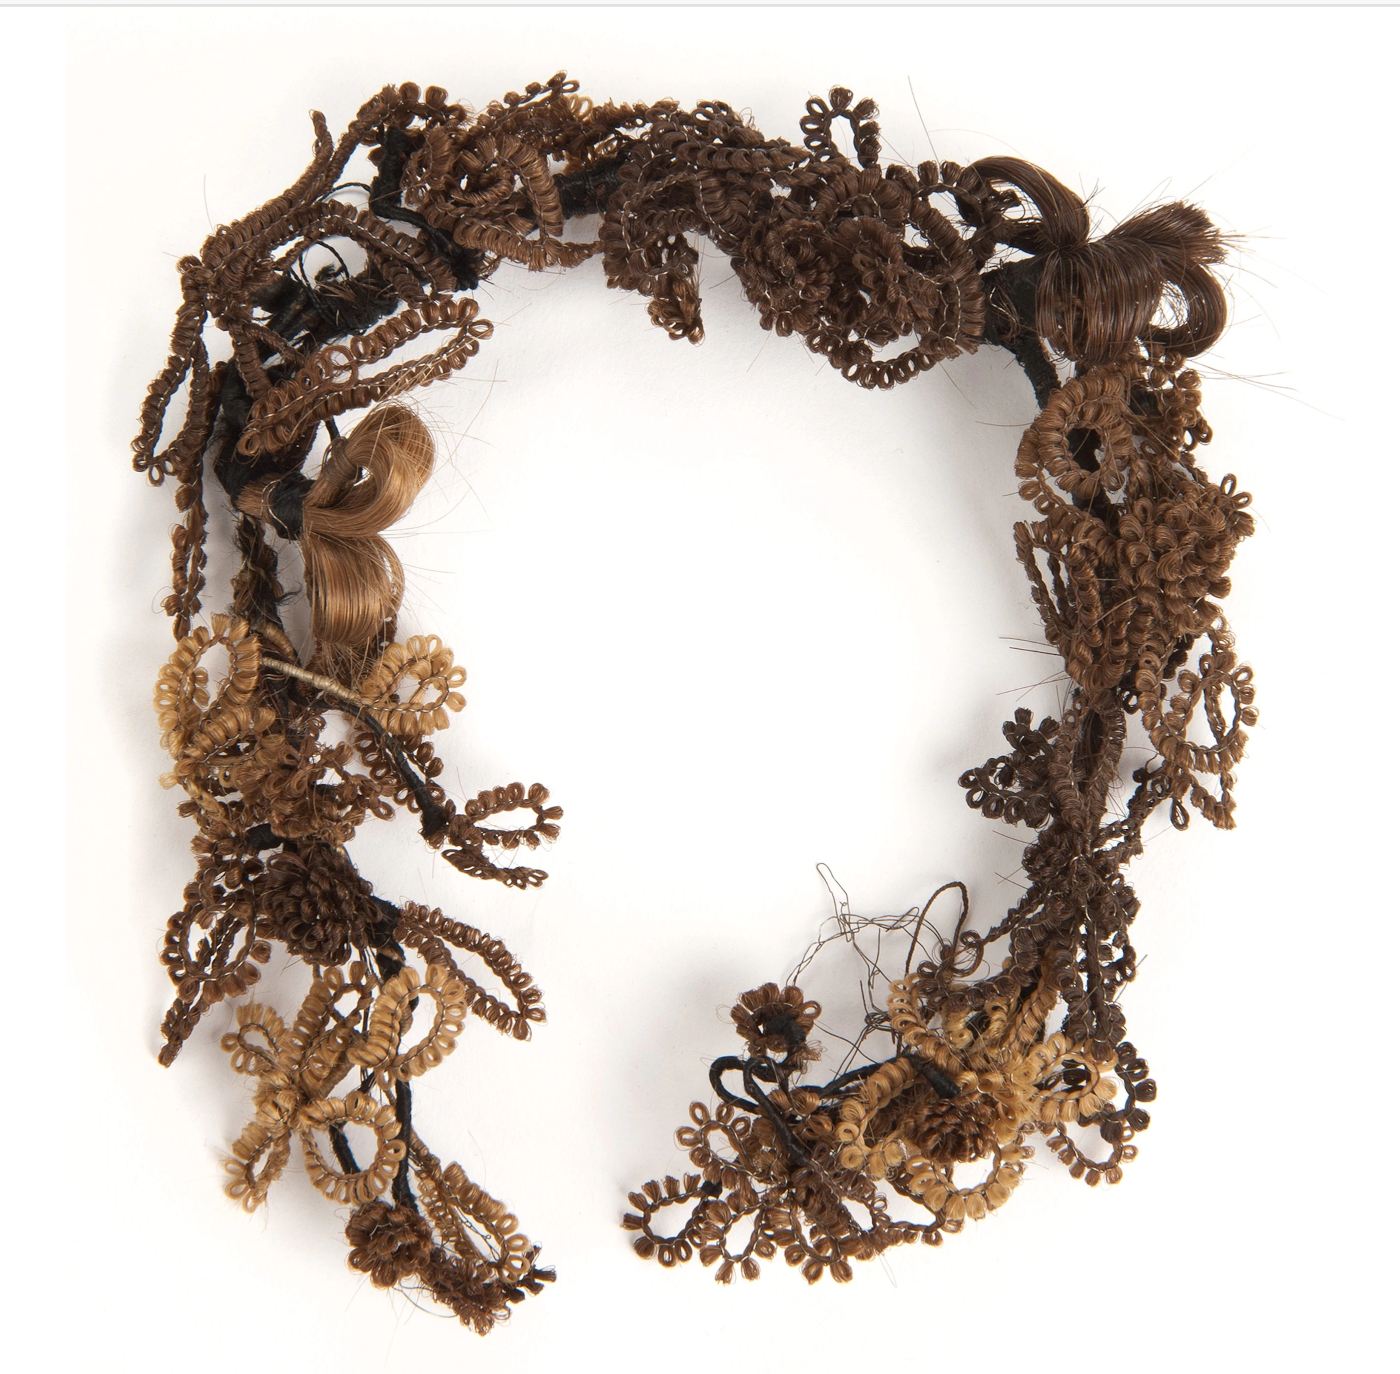 National Geographic, Victorian-era jewelry made from hair. Courtesy of the Minnesota Historical Society.